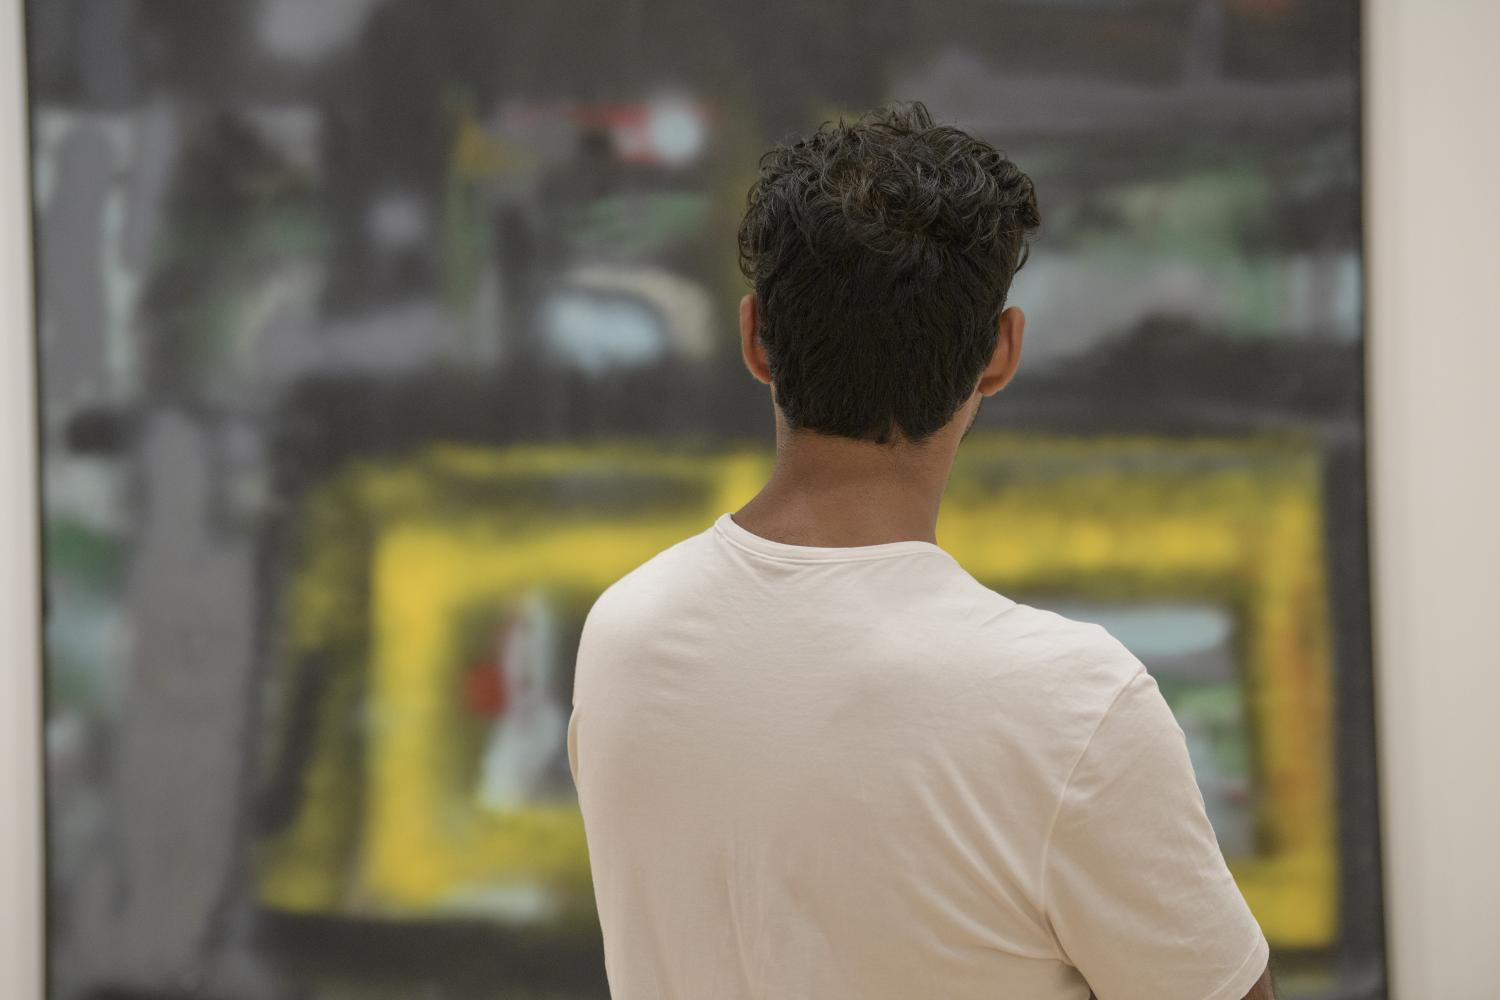 A male student with his back to the camera looks at NY Road by Hedda Sterne in Art Since 1948 at Krannert Art Museum